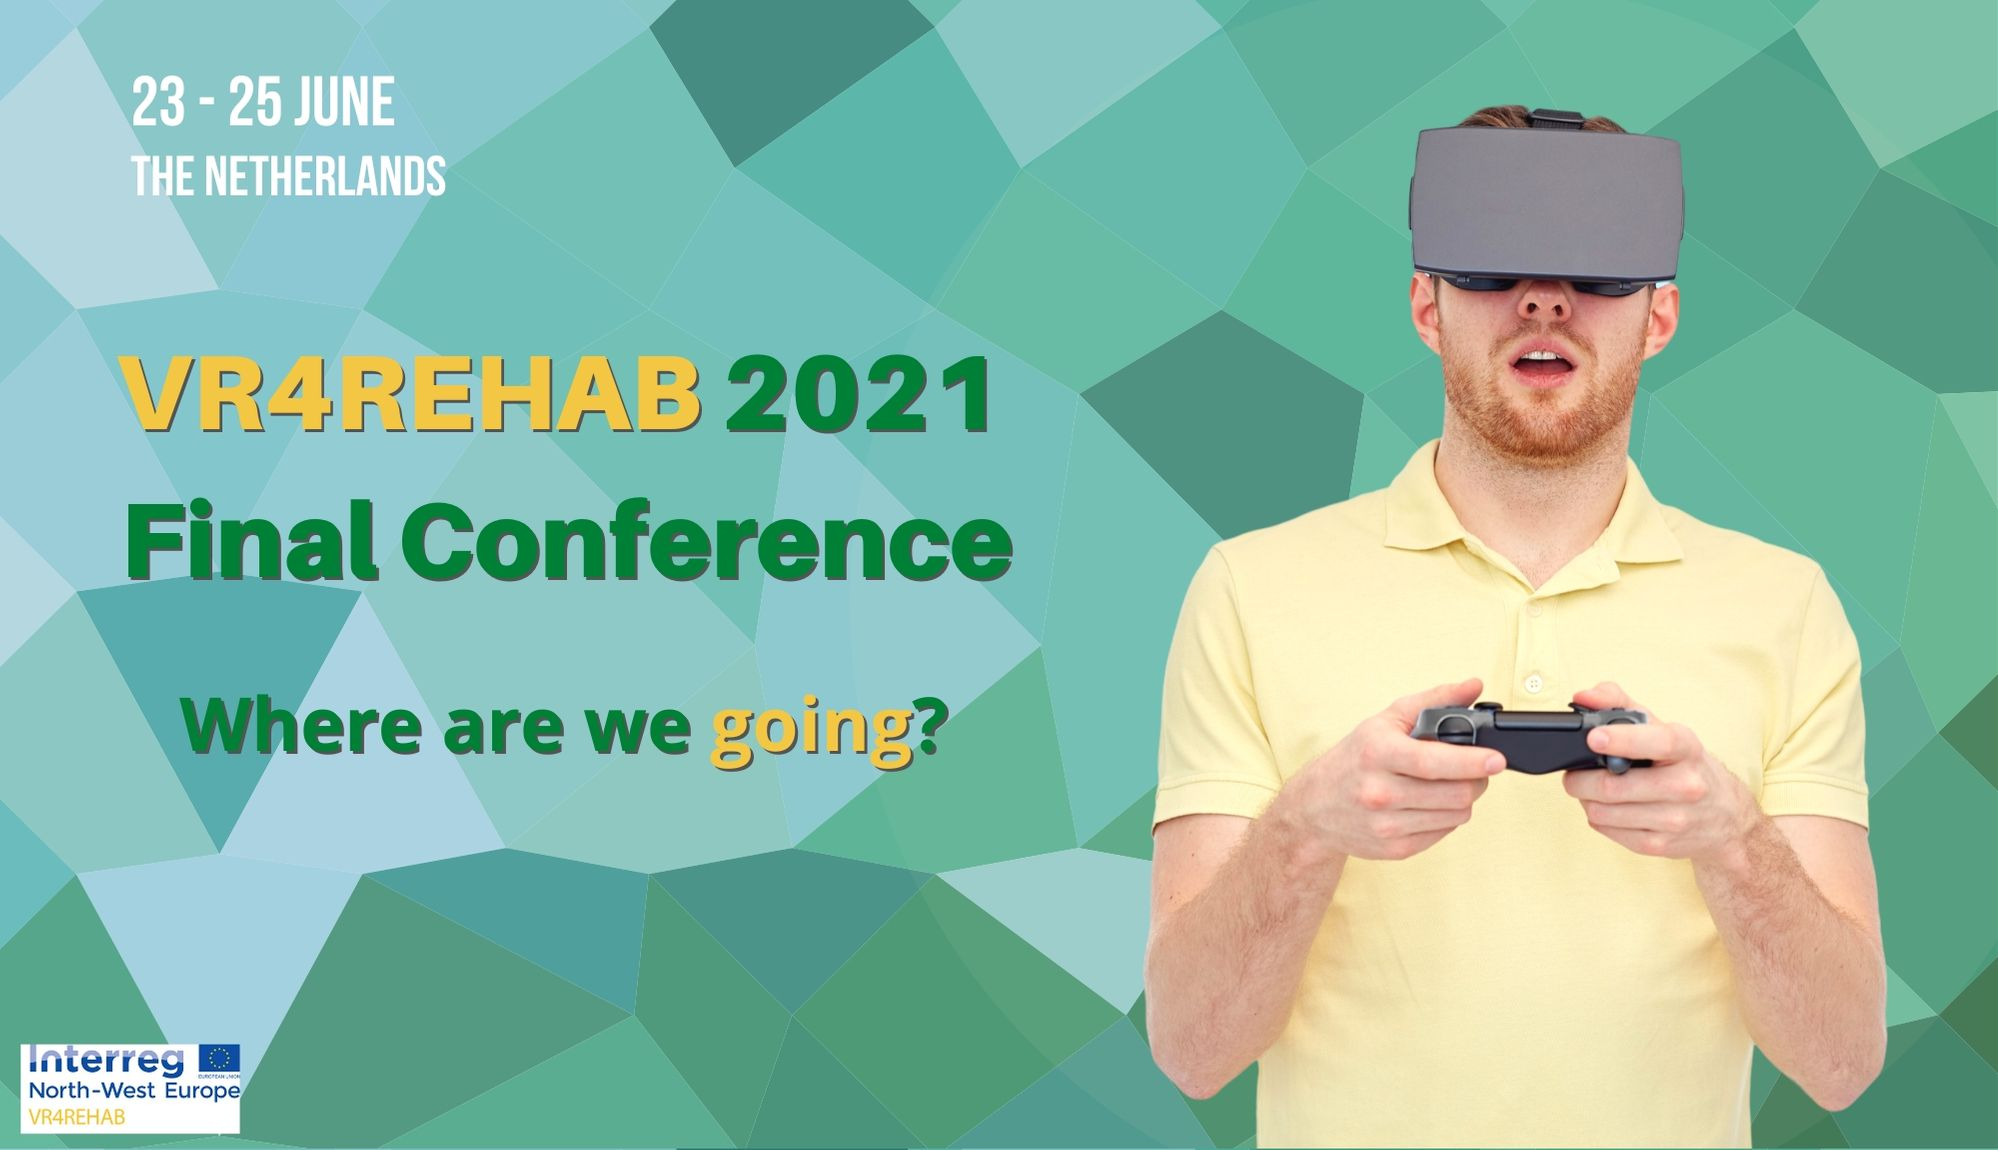 VR4REHAB 2021 Final Conference